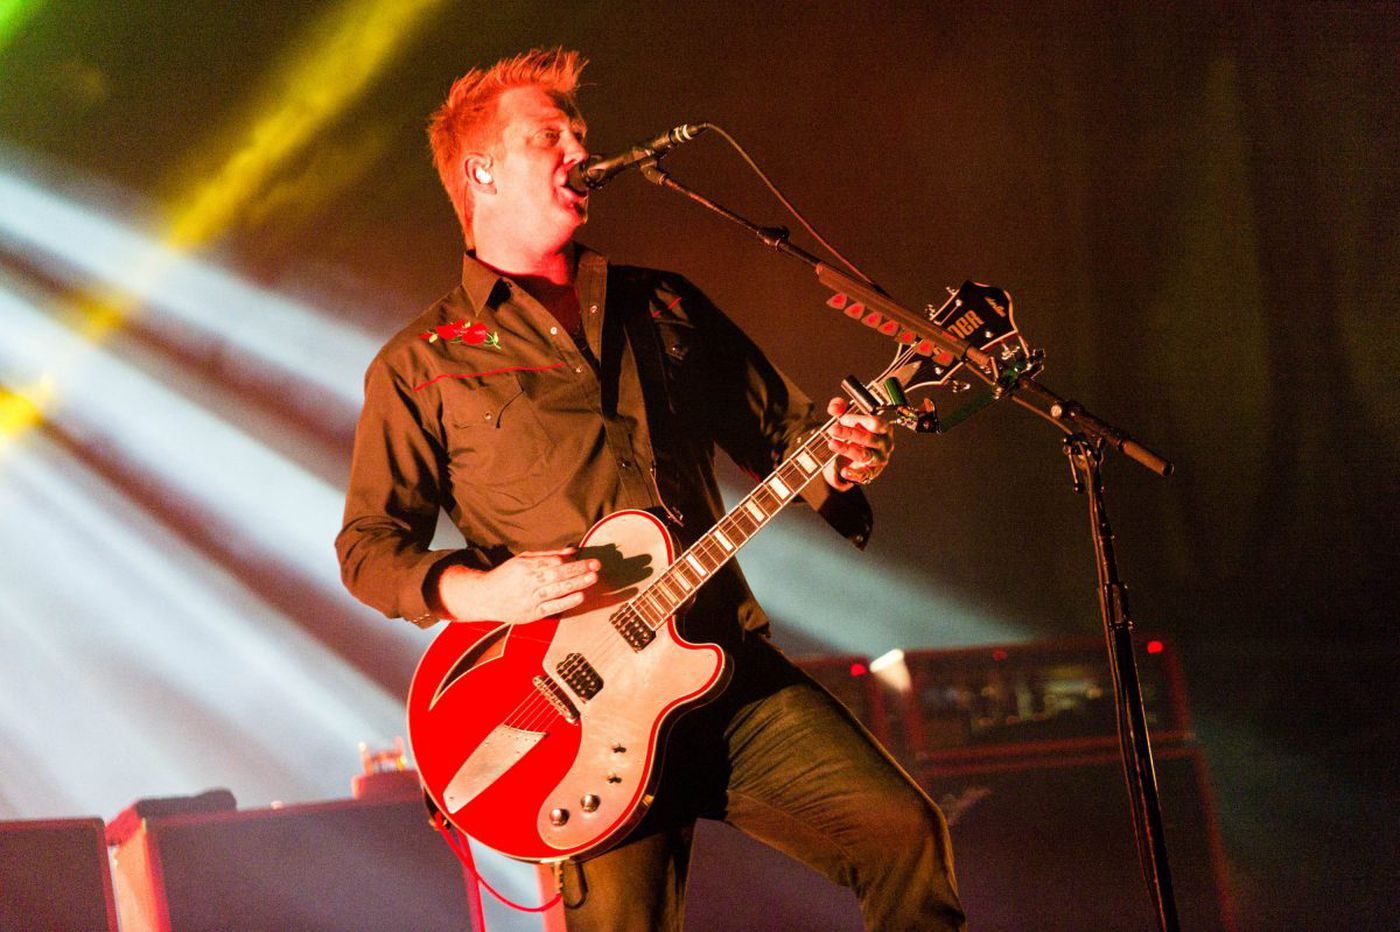 Album reviews: Queens of the Stone Age, Filthy Friends